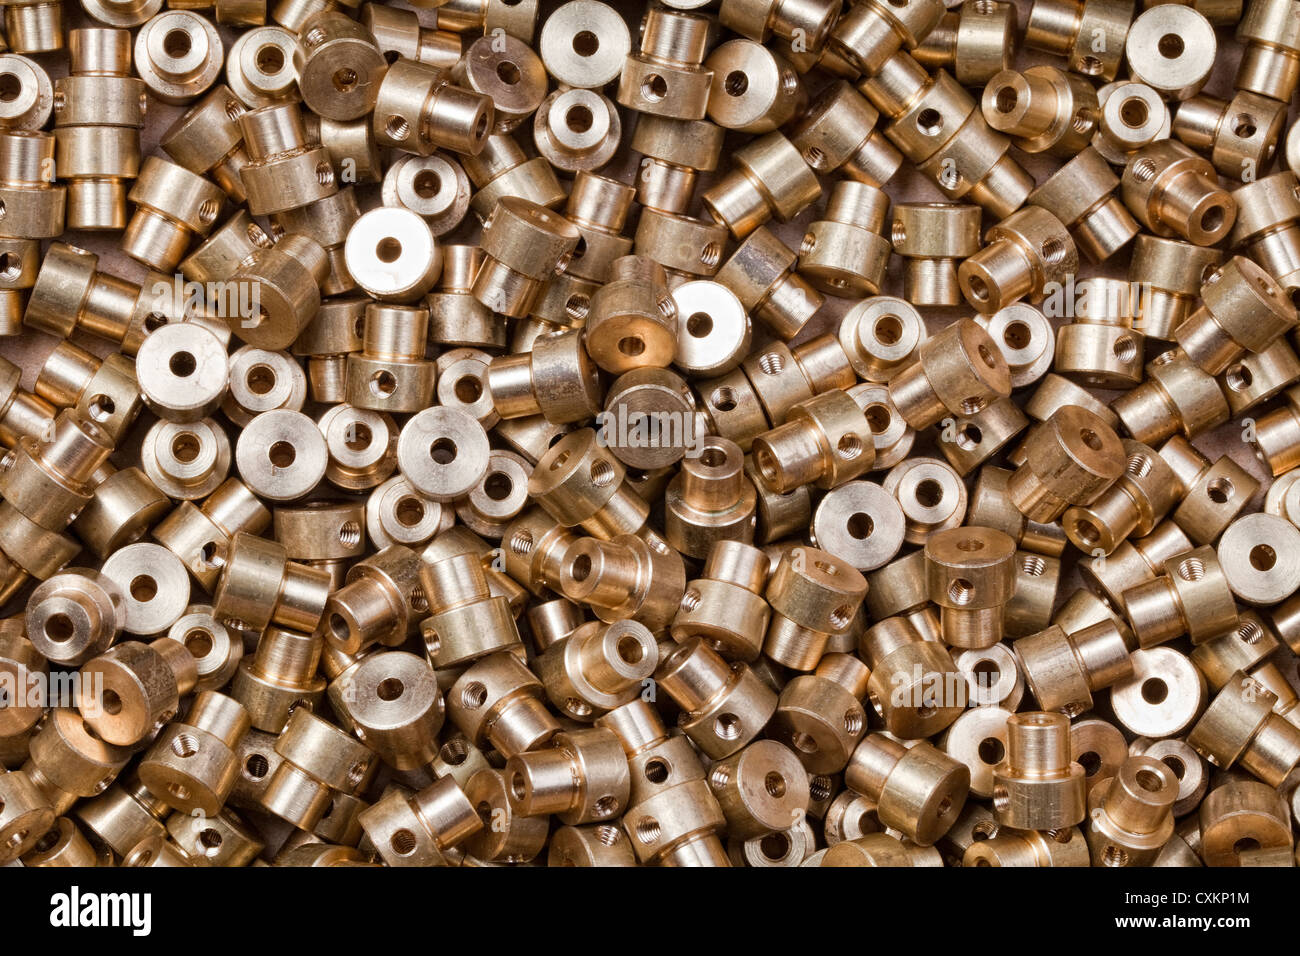 A pile of small, industrially produced parts made of brass - Stock Image